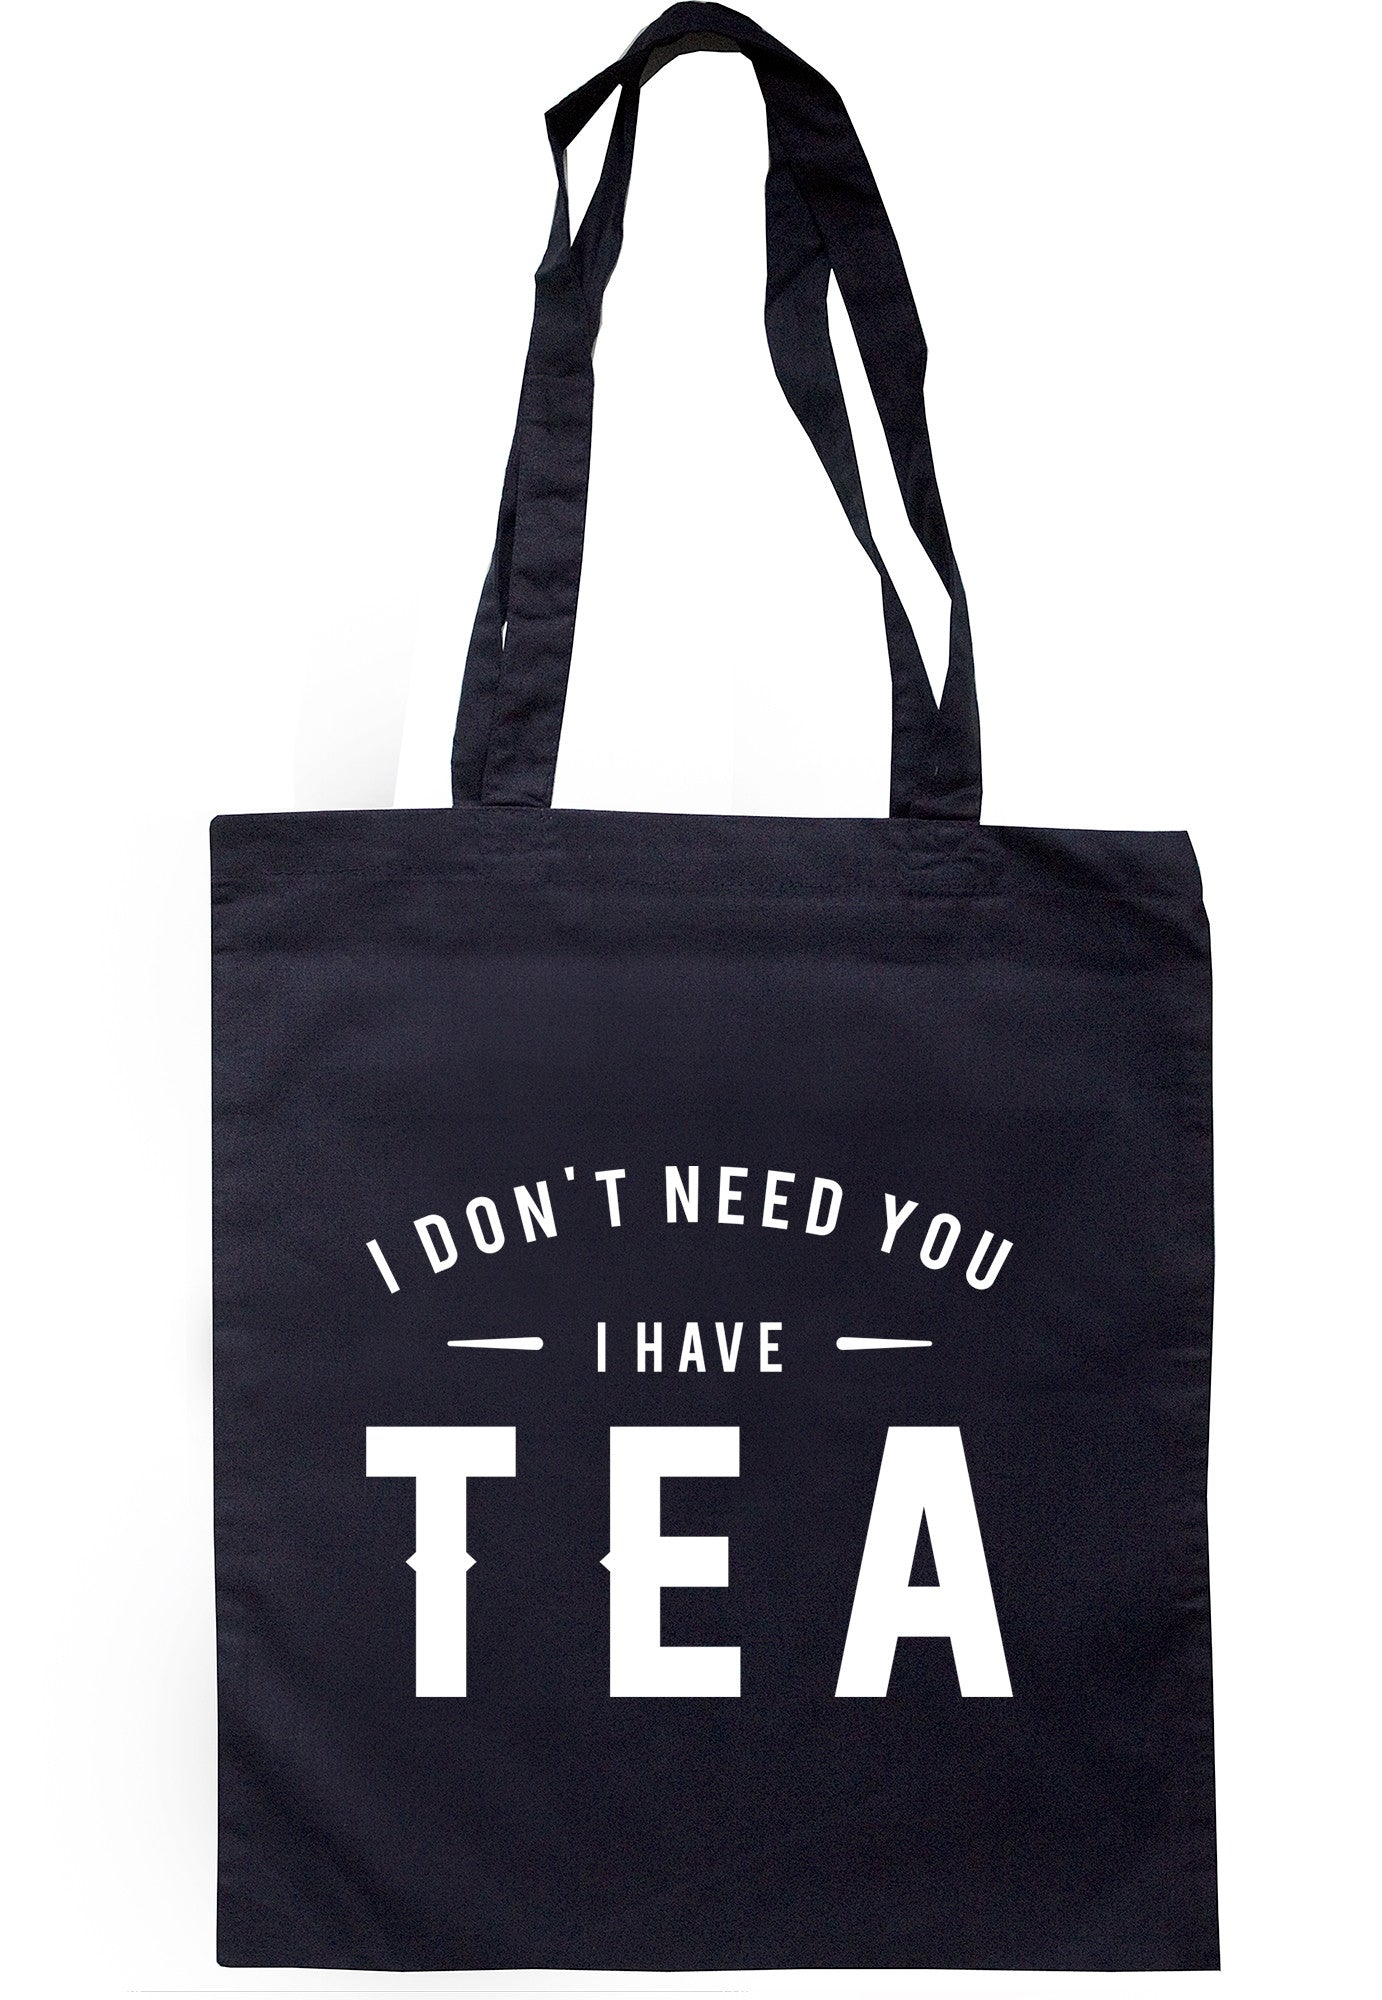 I Don't Need You I Have Tea Tote Bag TB0595 - Illustrated Identity Ltd.